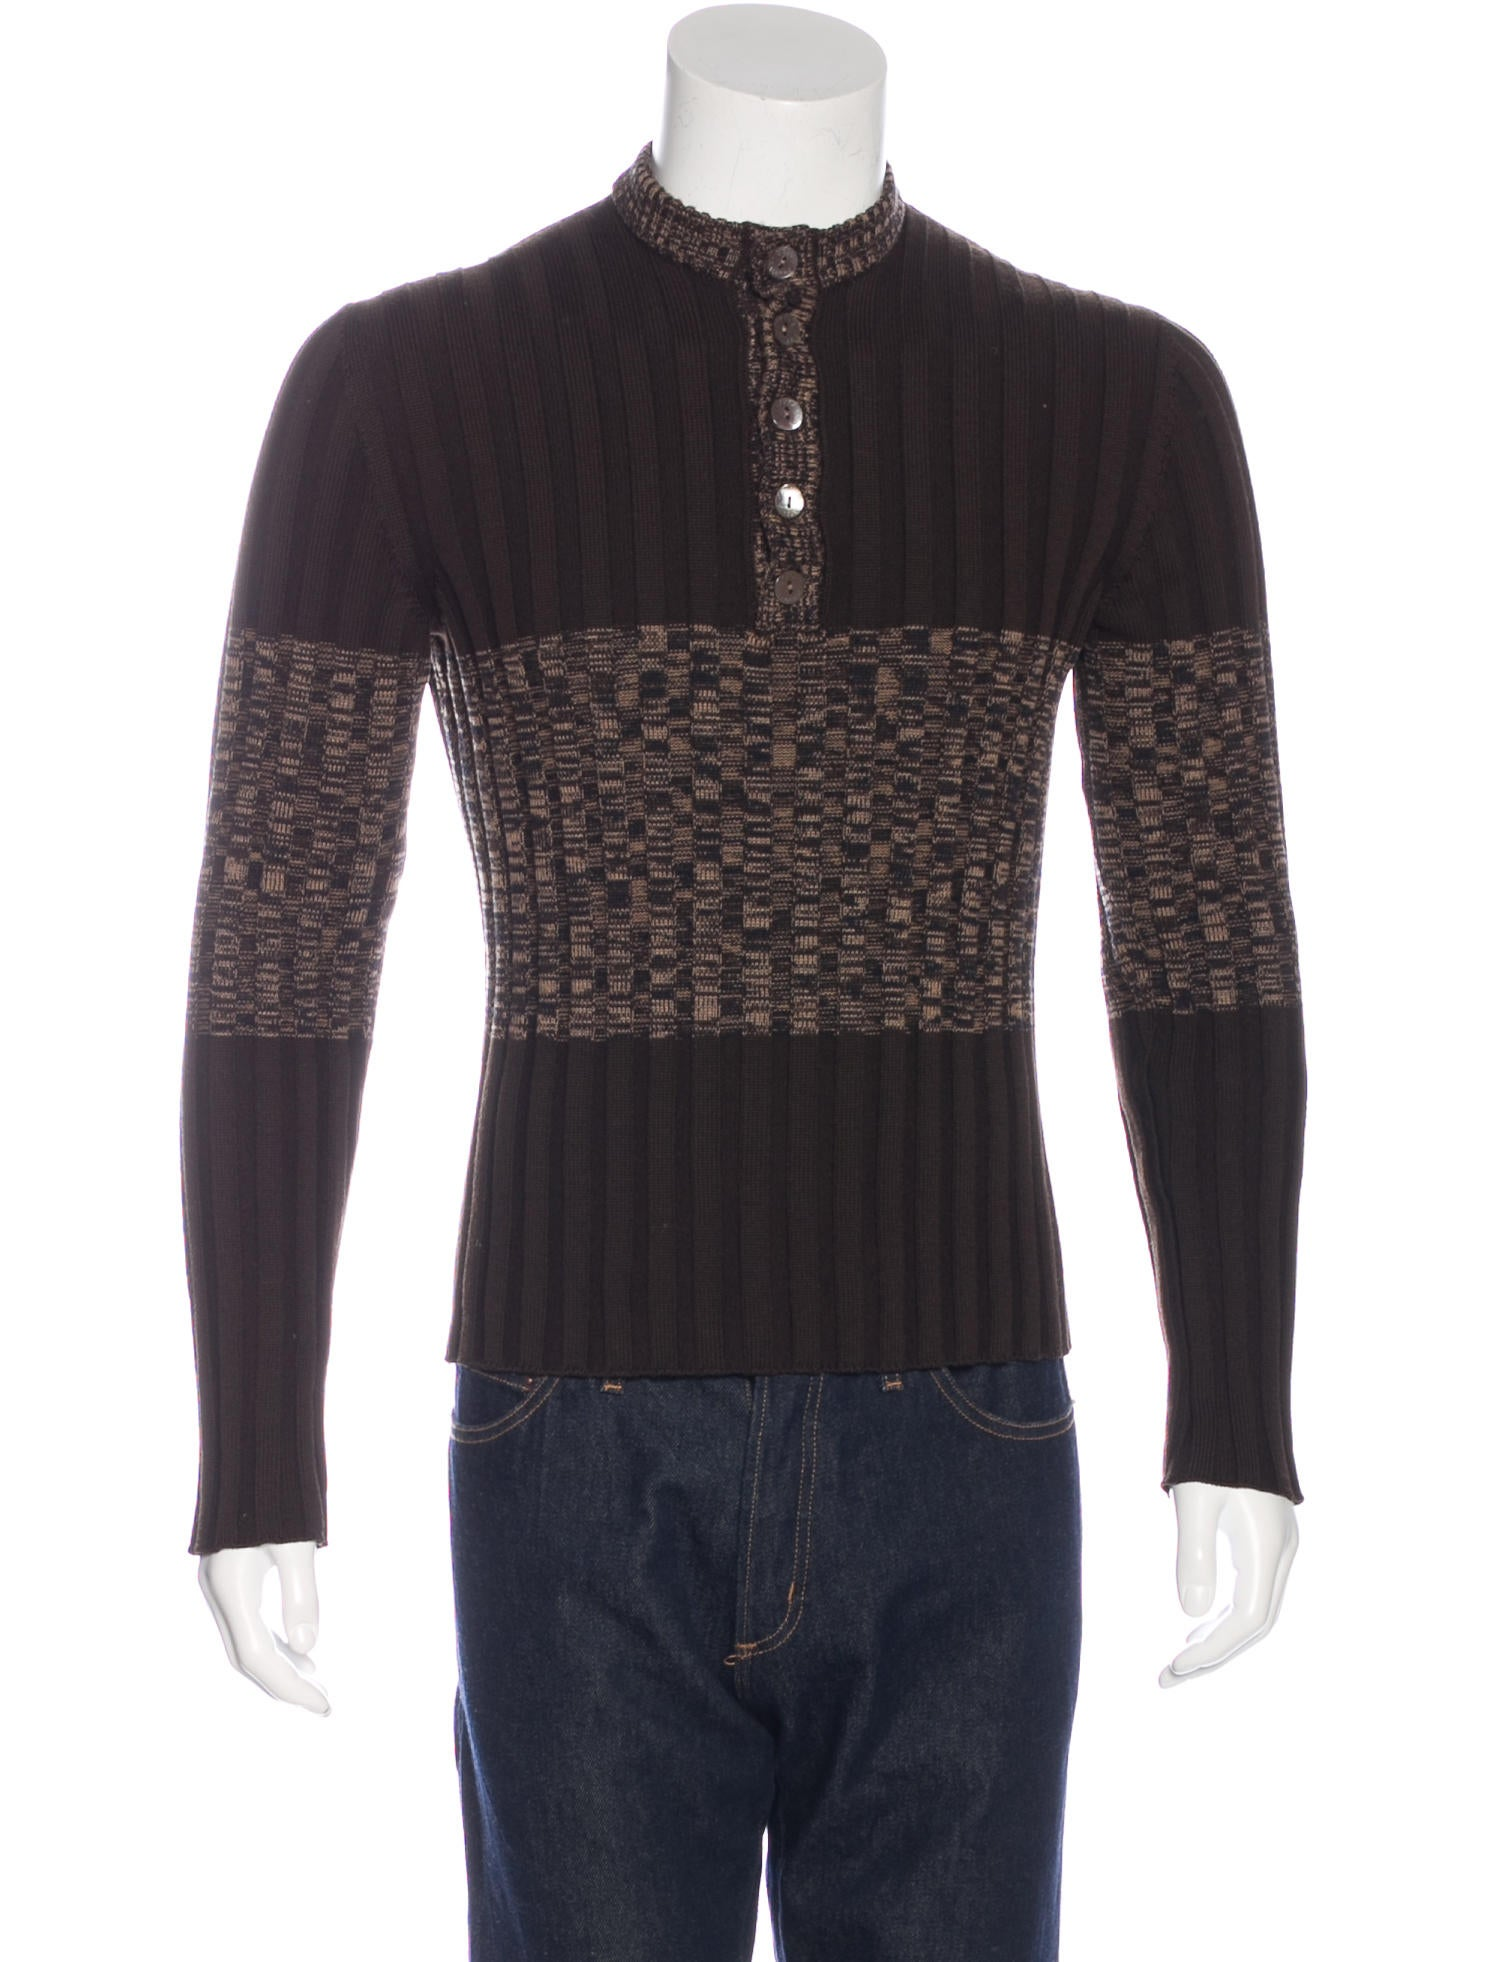 Dolce & Gabbana Wool Knit Henley Sweater - Clothing - DAG79411 The Real...